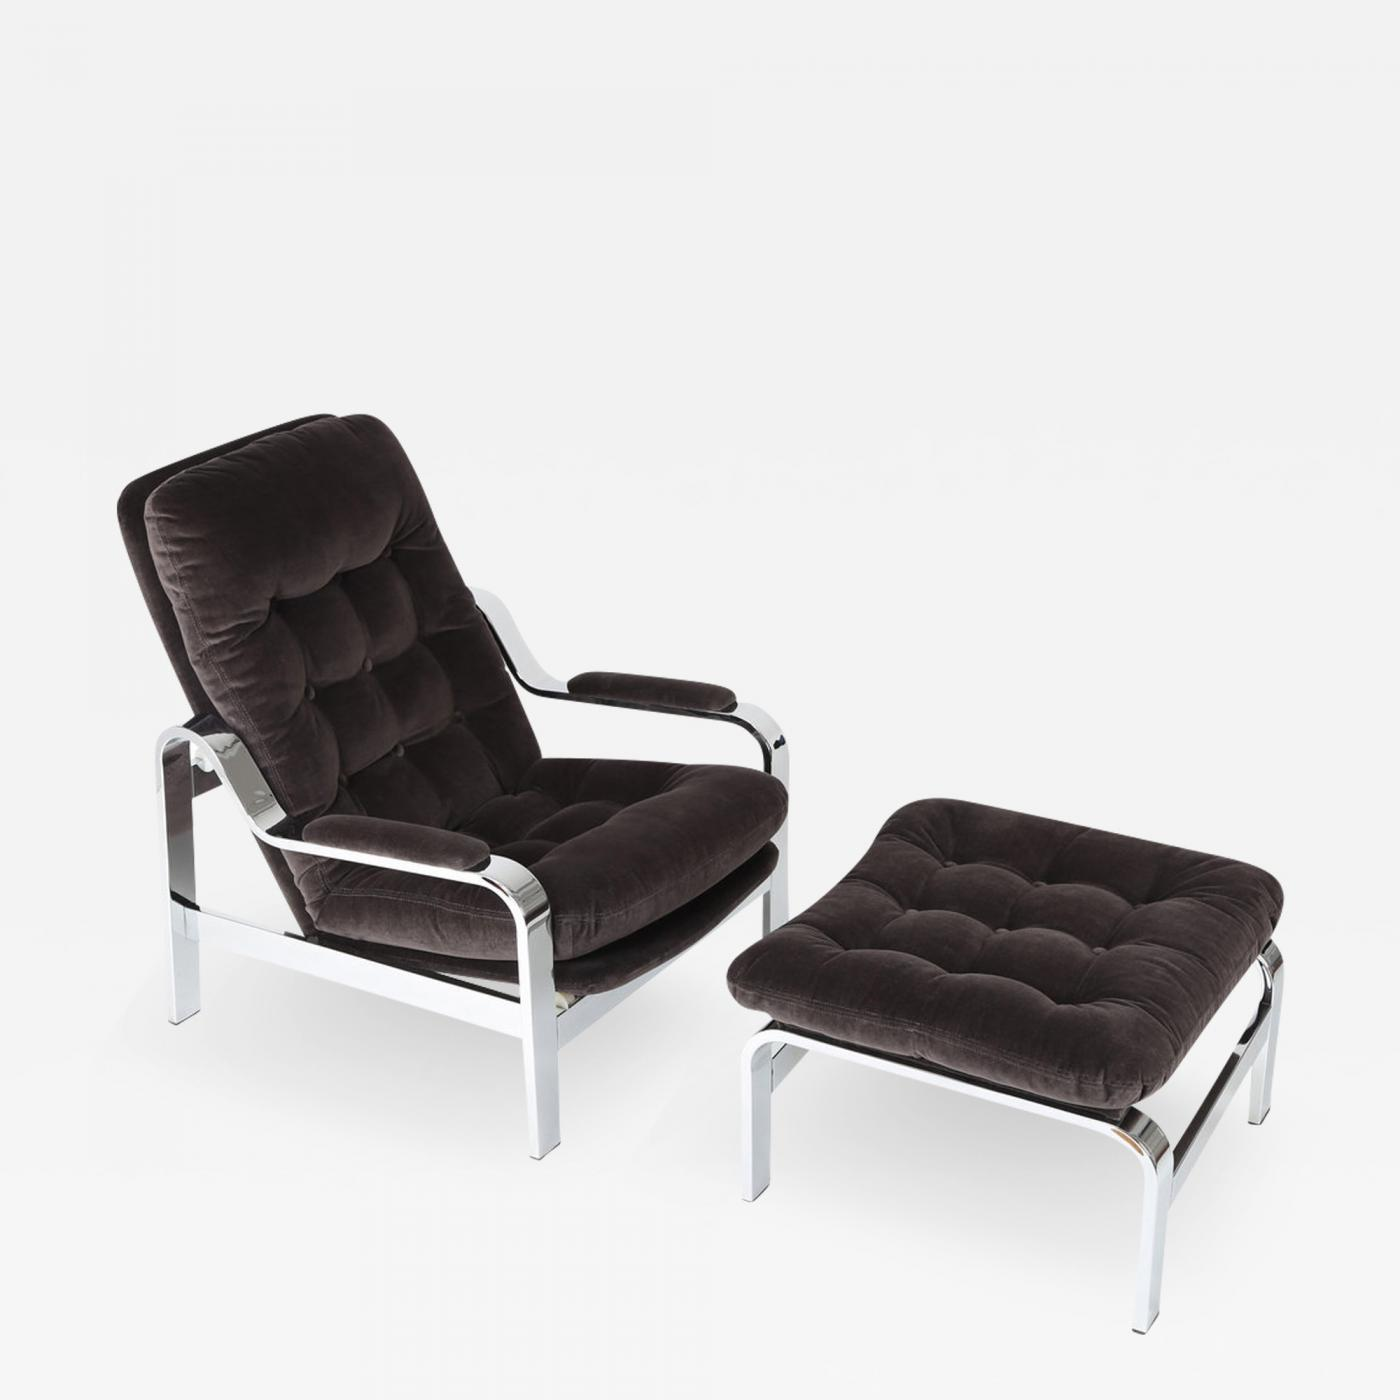 Pleasing Selig Furniture Co Selig Reclining Lounge Chair And Ottoman With Chrome Frames Download Free Architecture Designs Scobabritishbridgeorg